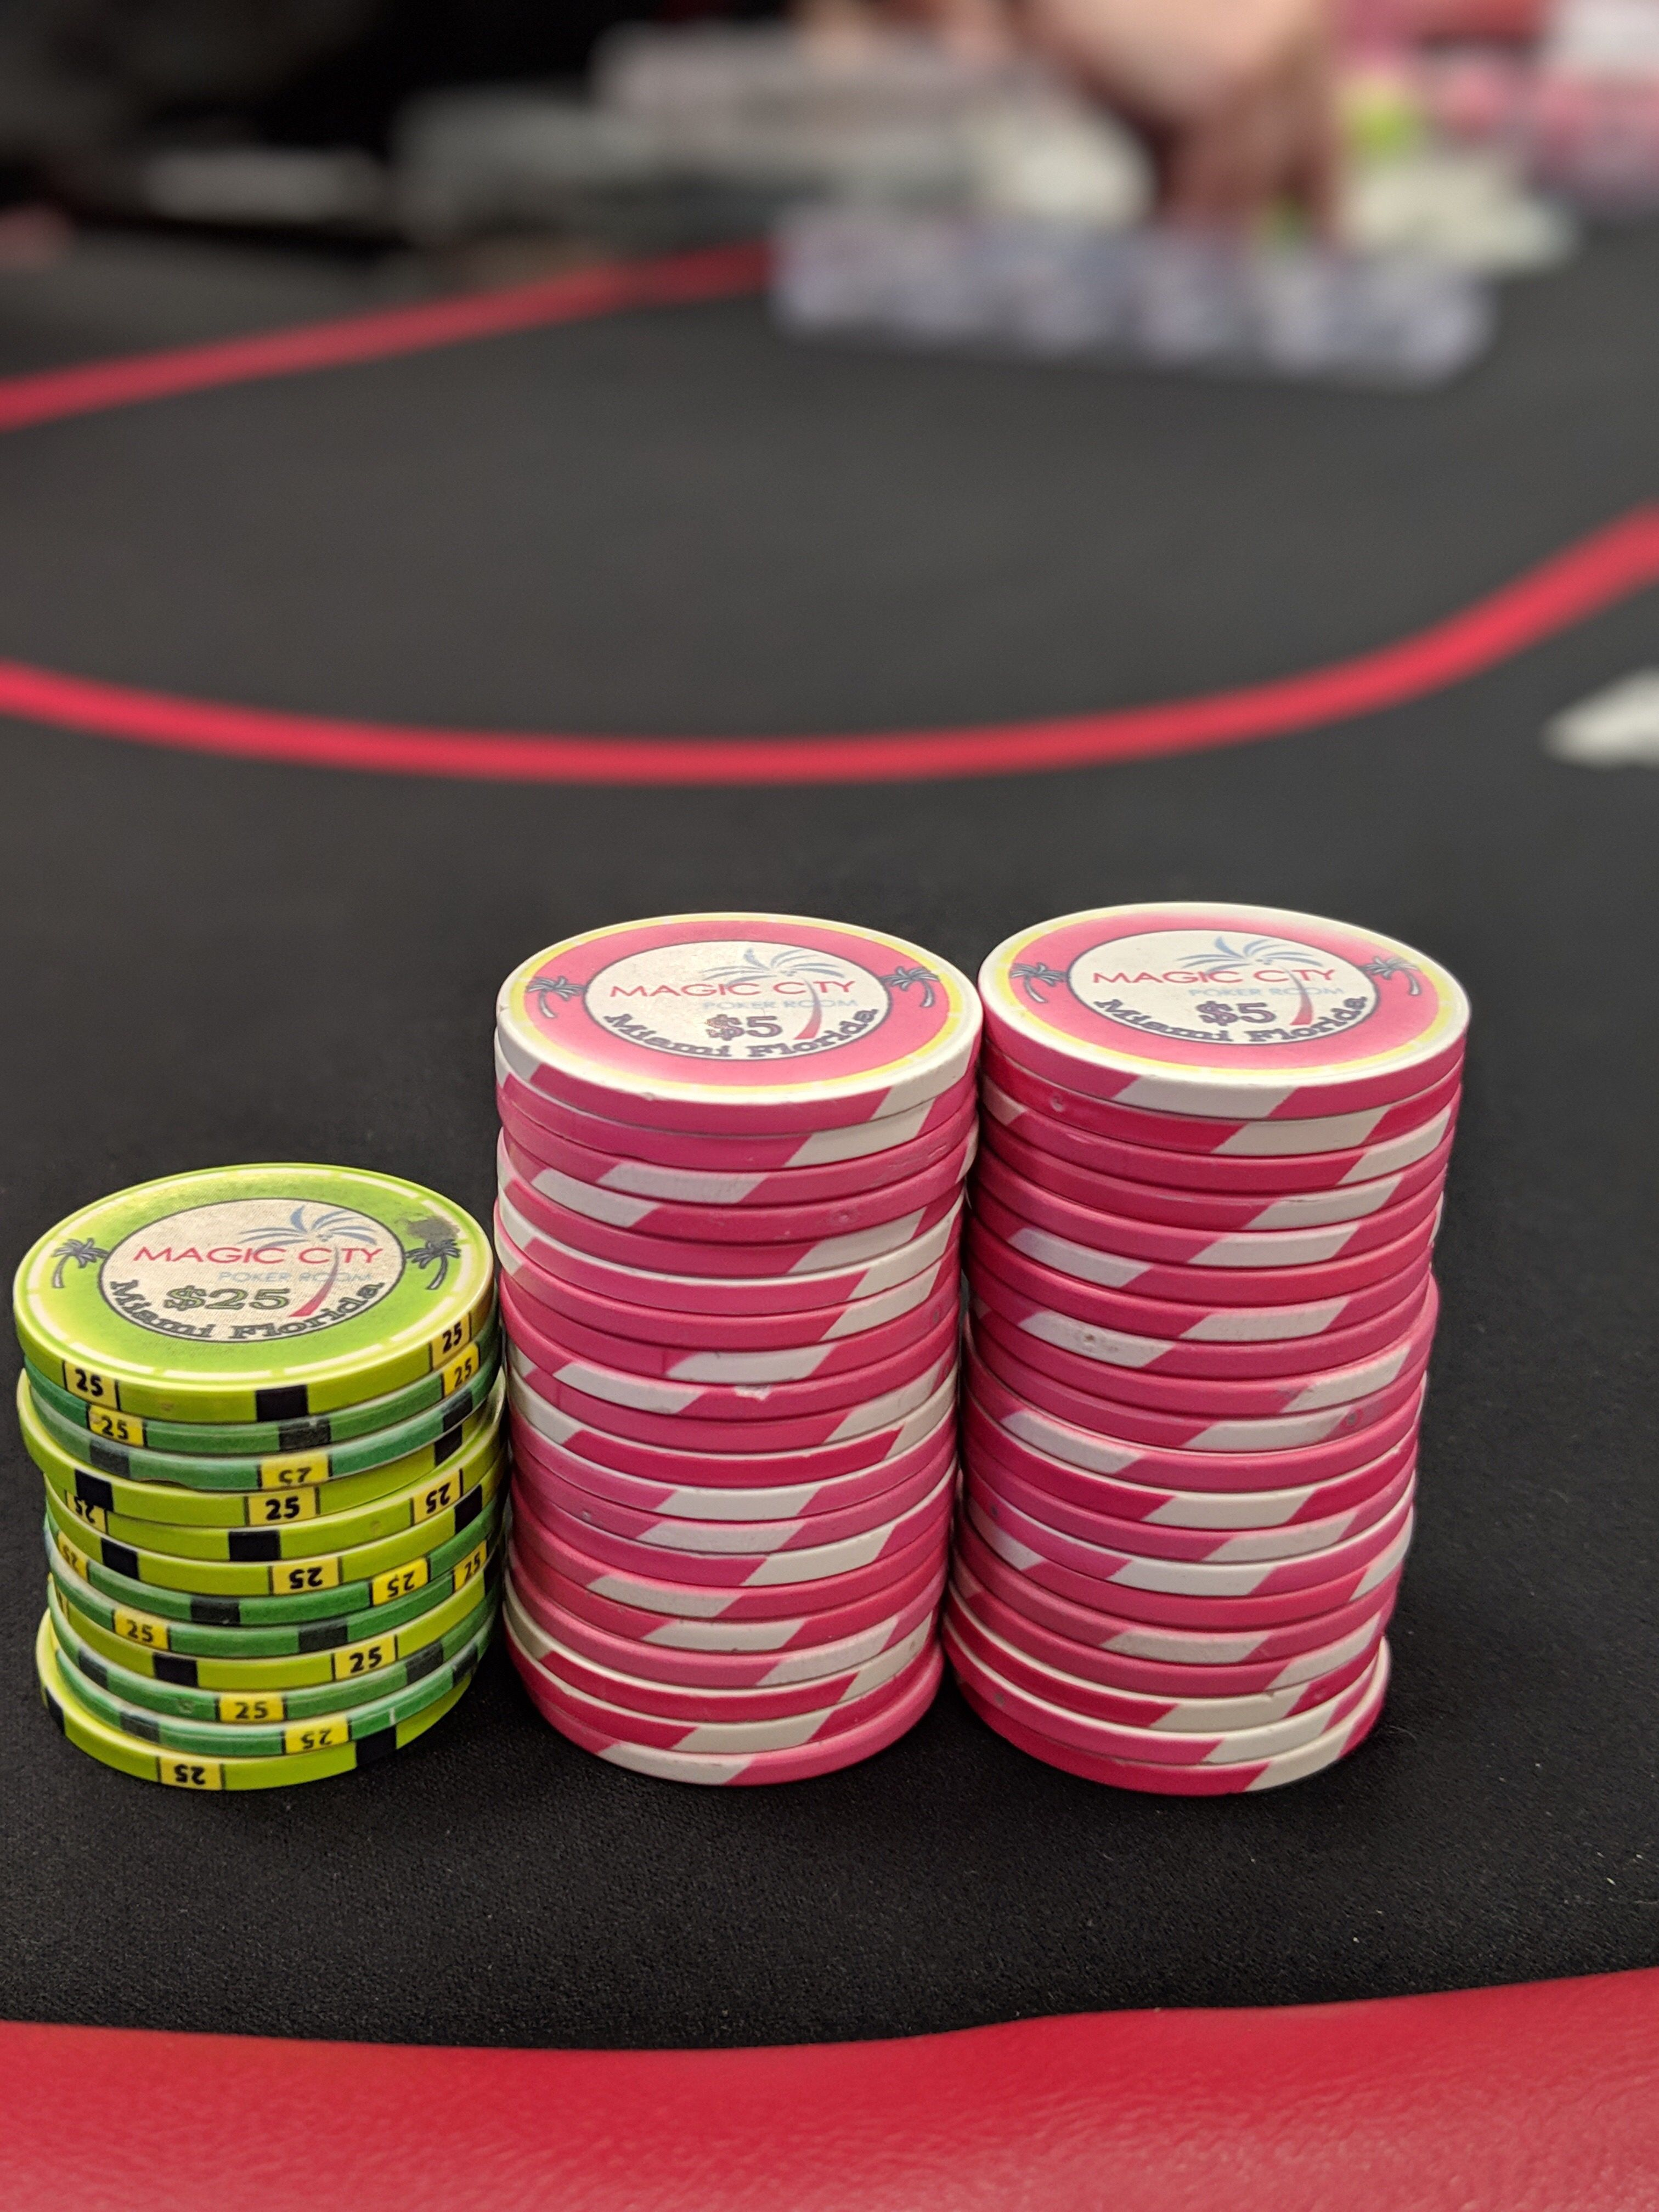 2 5 Chipstack From Magic City Casino Magic City Instagram Travel